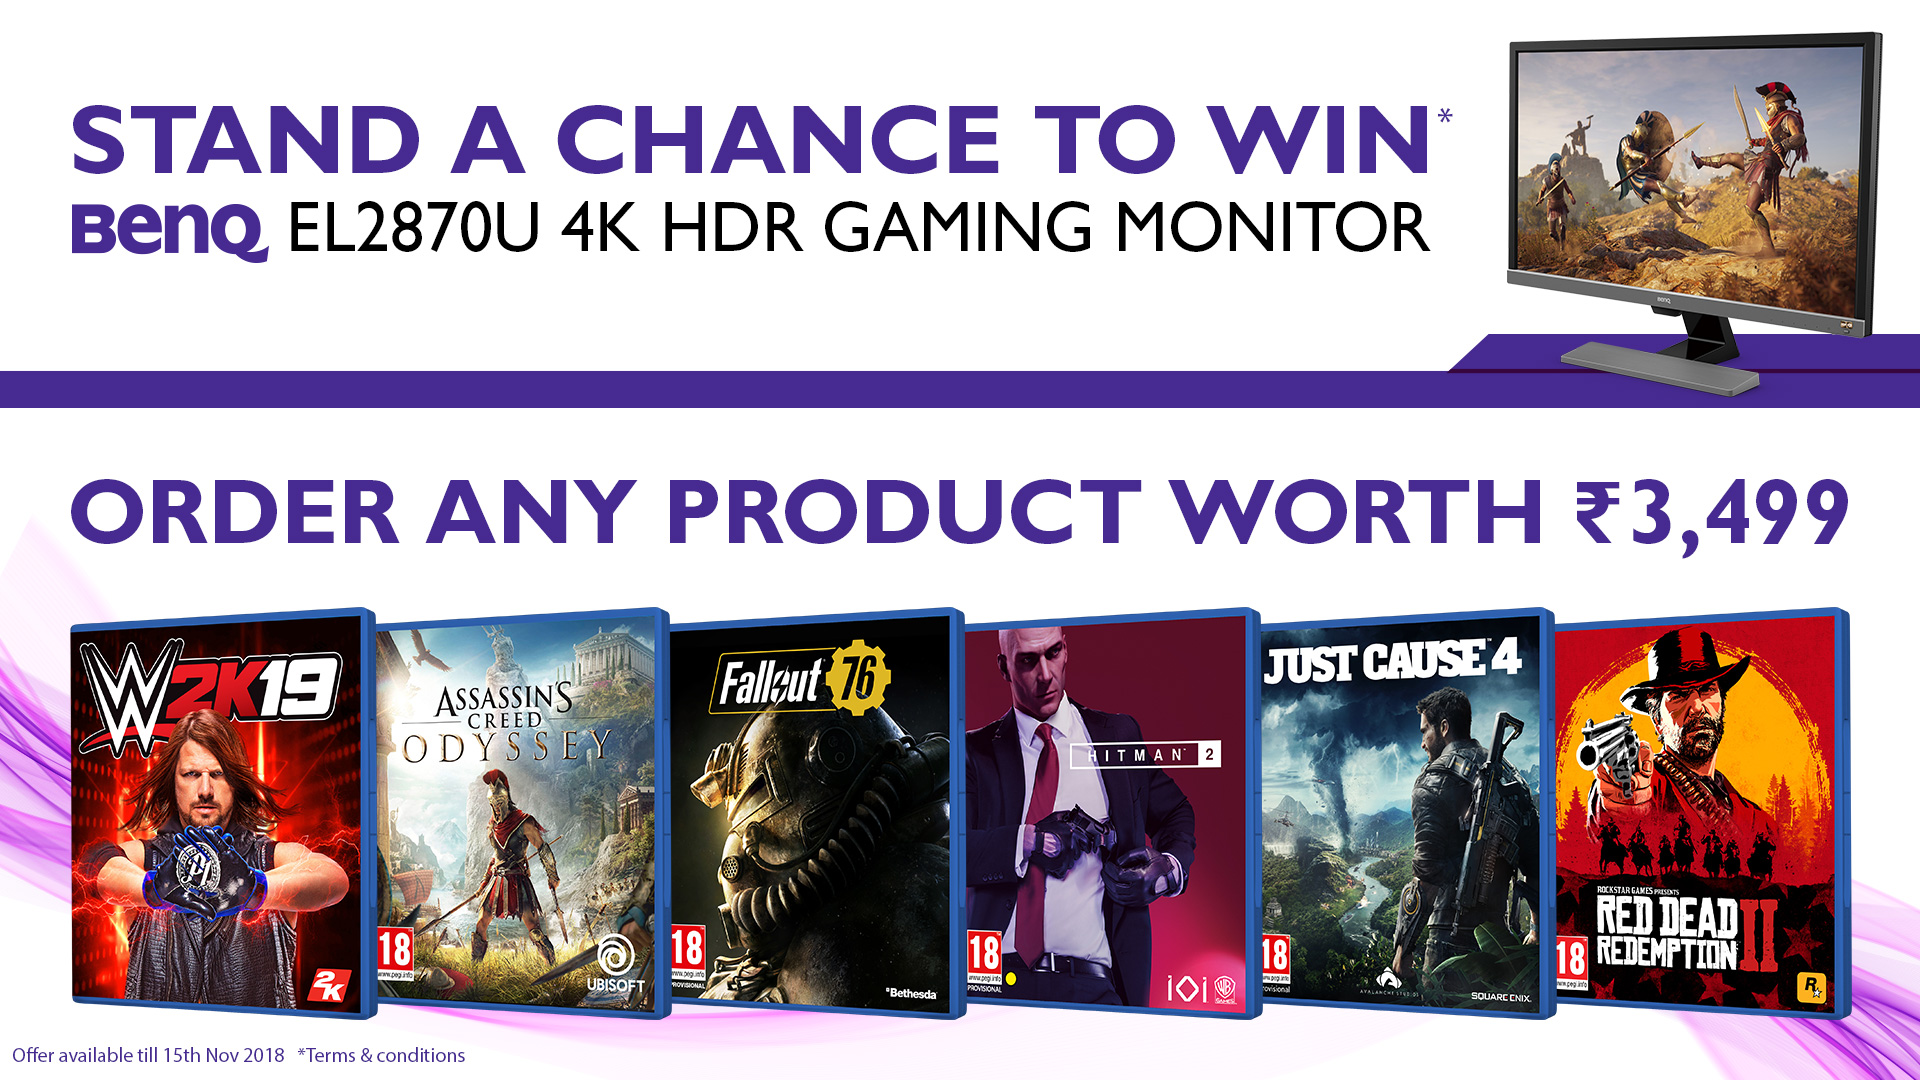 WIN 4K HDR Gaming Monitor